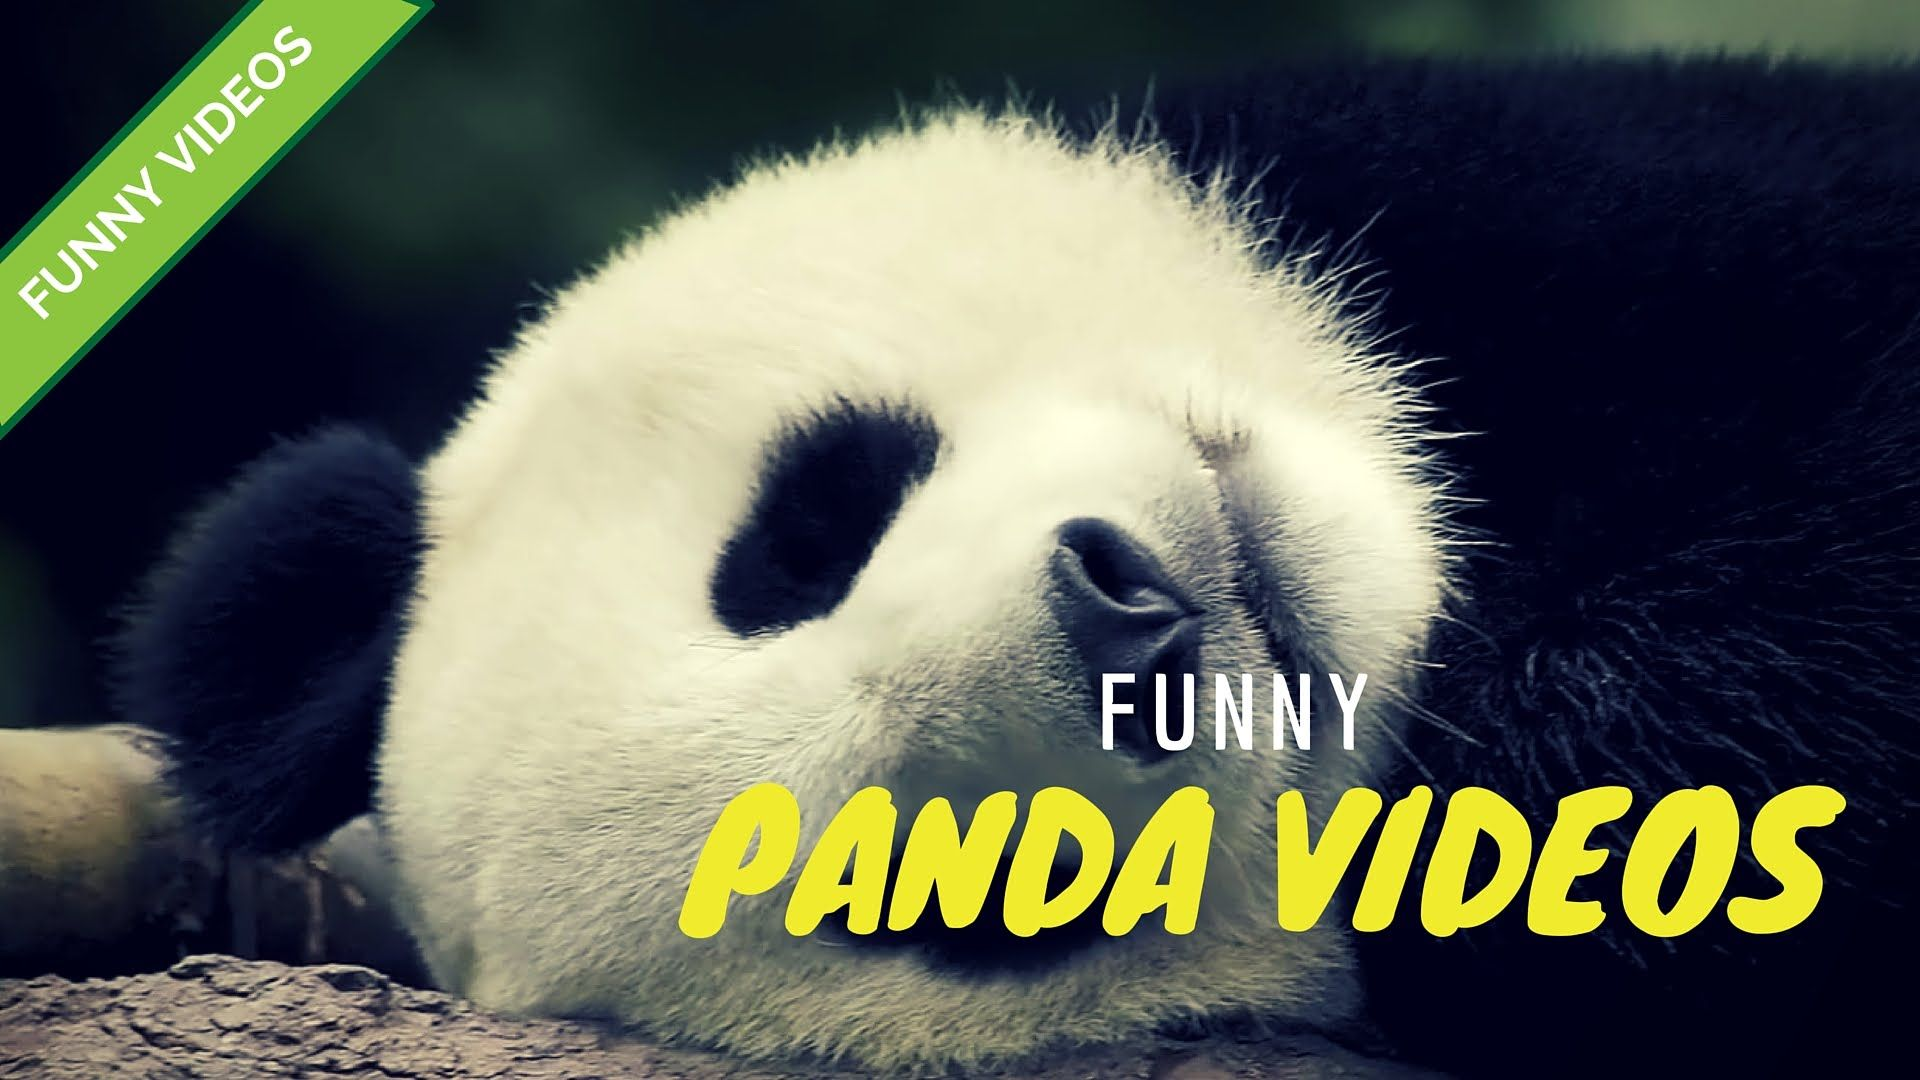 These will make you laugh for sure funniest panda video